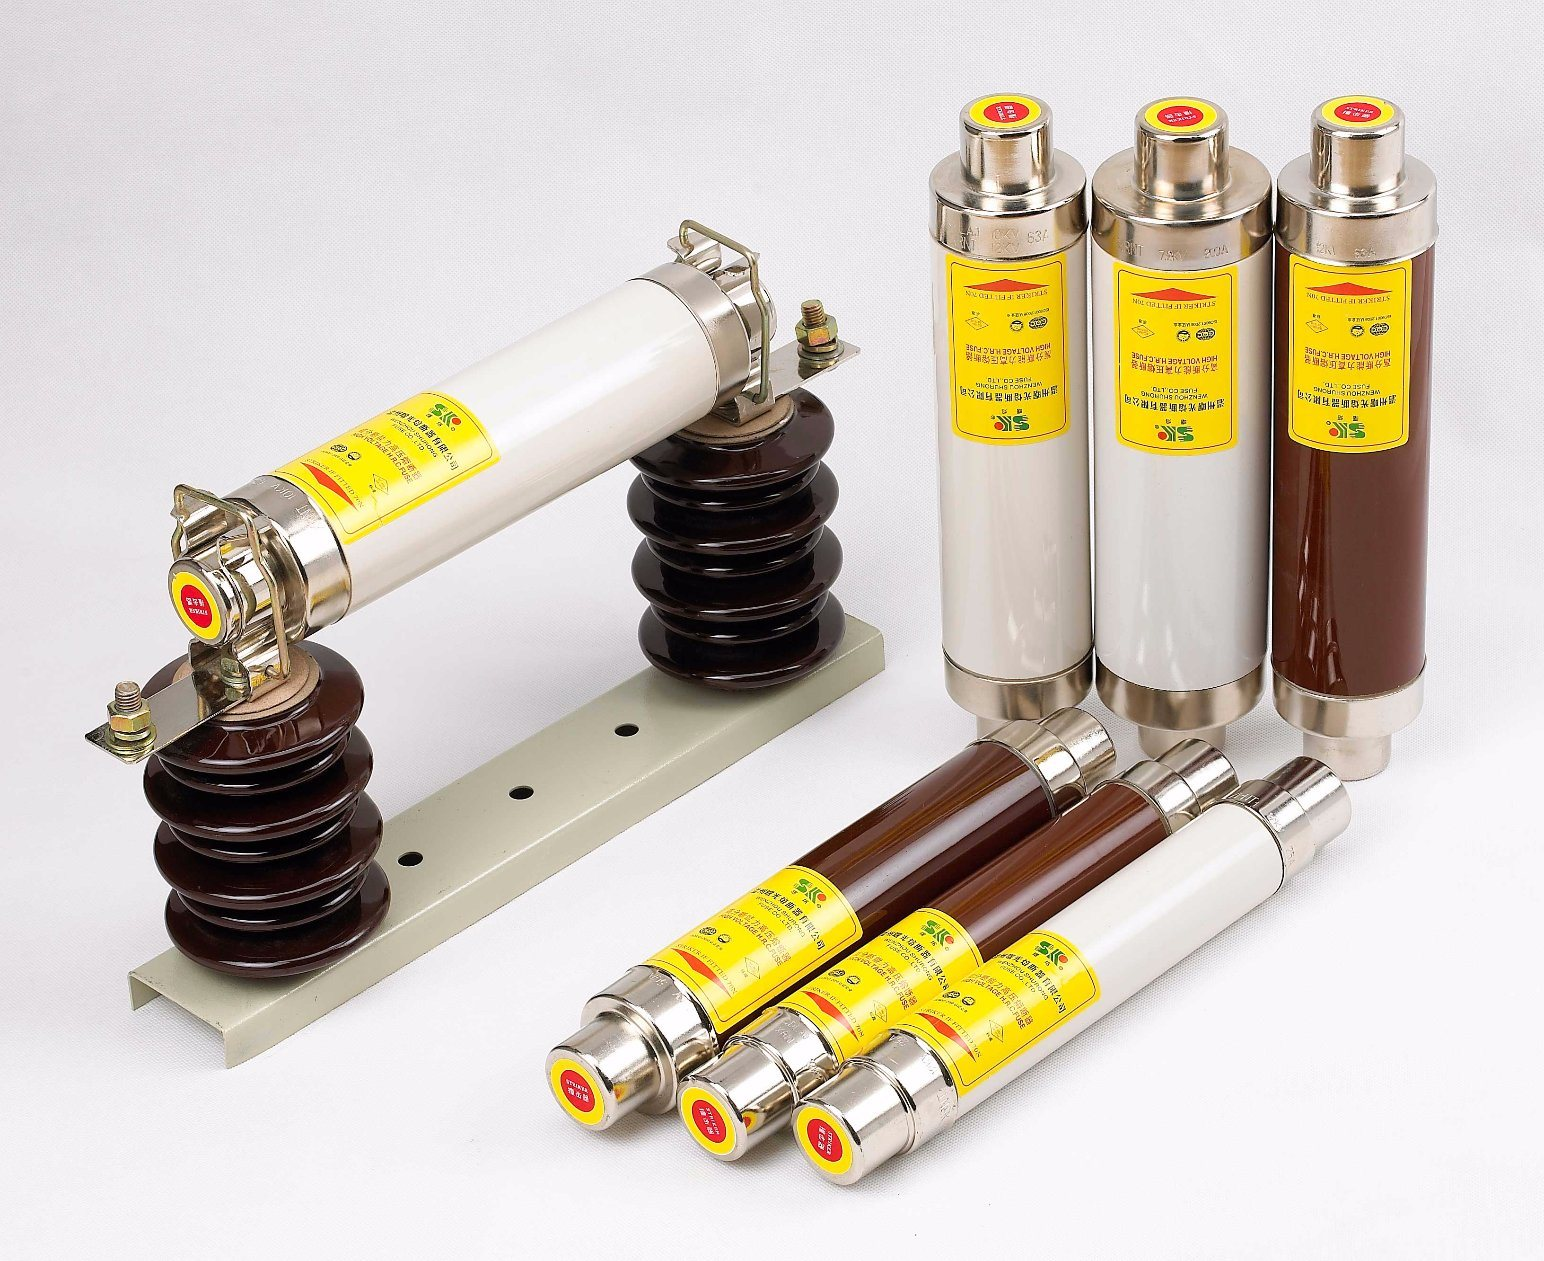 S Series Plug-in Type 7.2kv 8-160AMP Ceramic Fuses for Transformer Protection pictures & photos